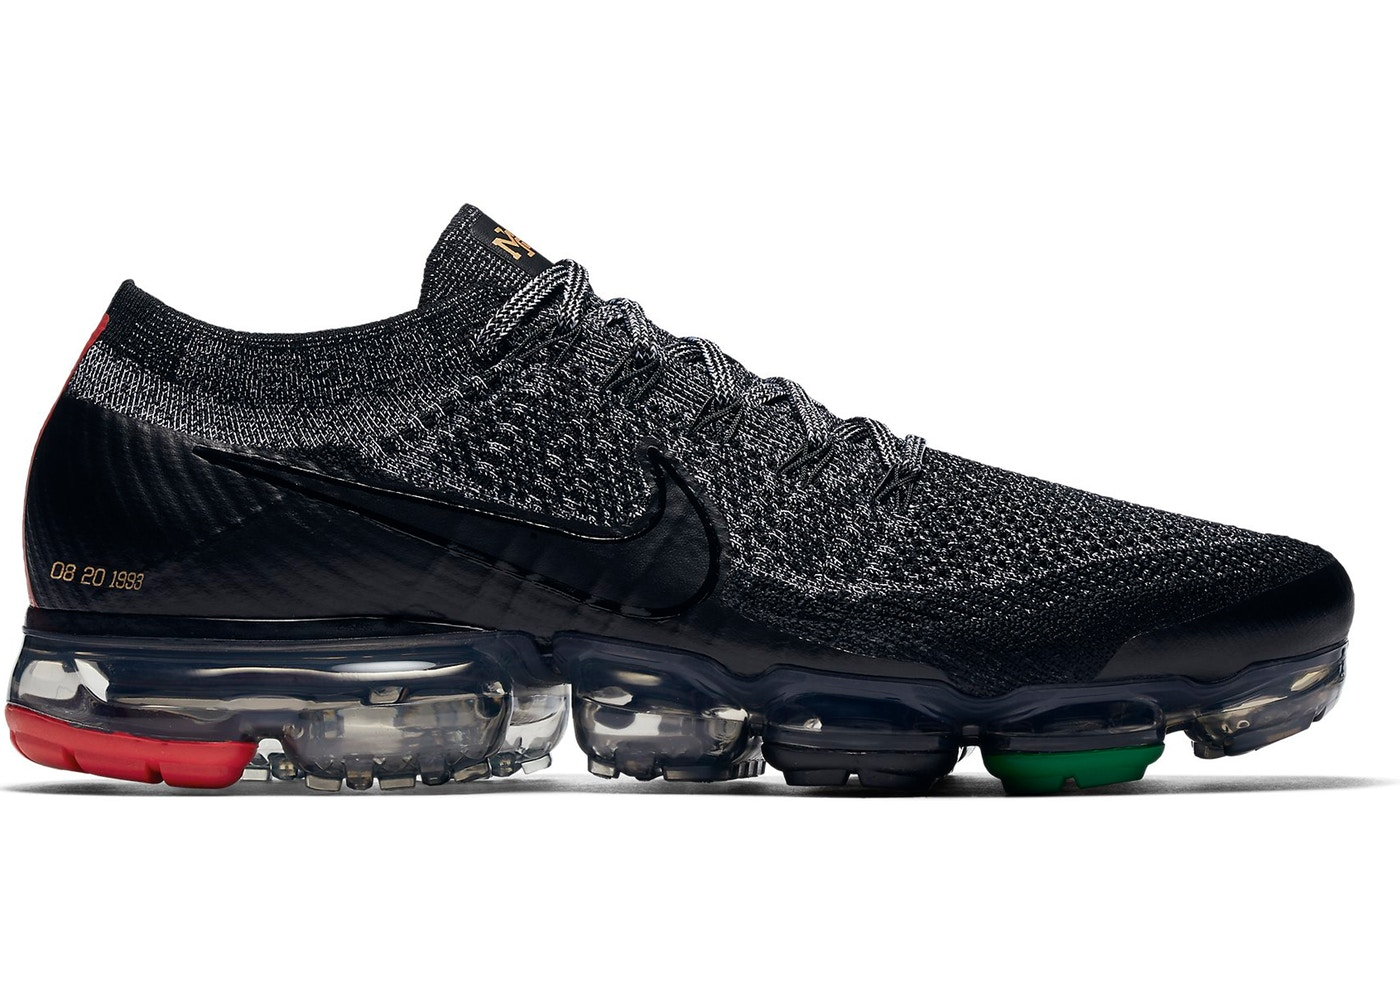 46cfb9237c1 Air VaporMax Black History Month (2018) - AQ0924-007